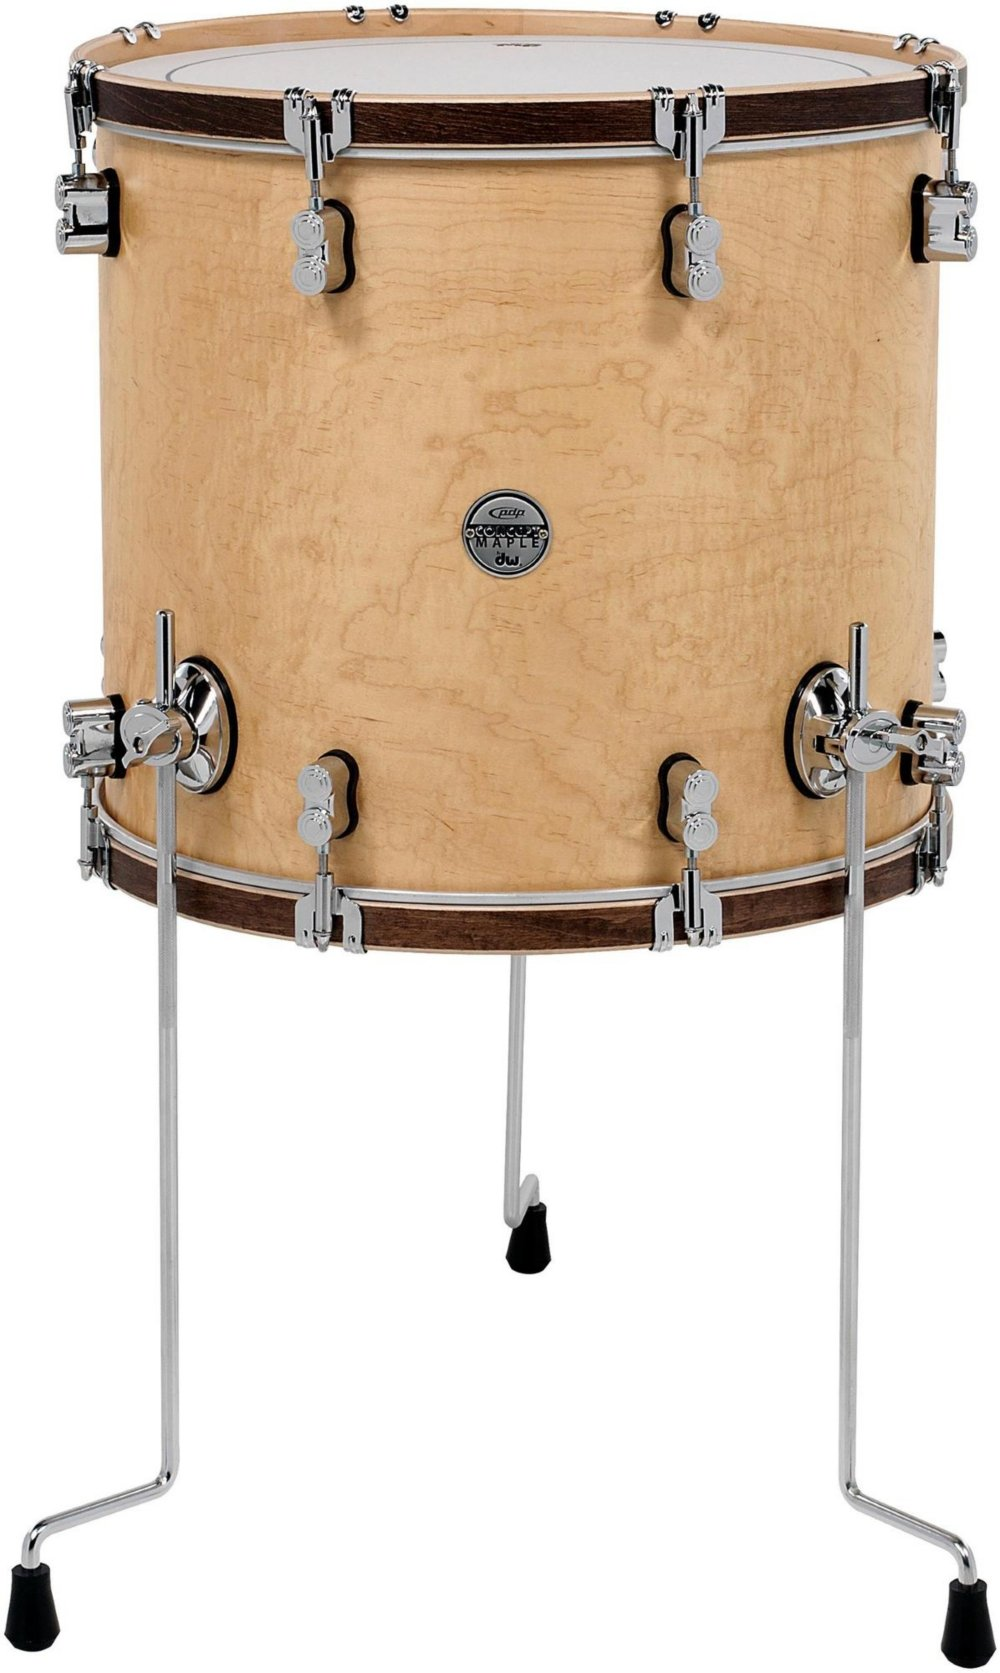 PDP Concept Maple Classic Floor Tom with Tobacco Hoops 18 x 16 in. Natural by PDP